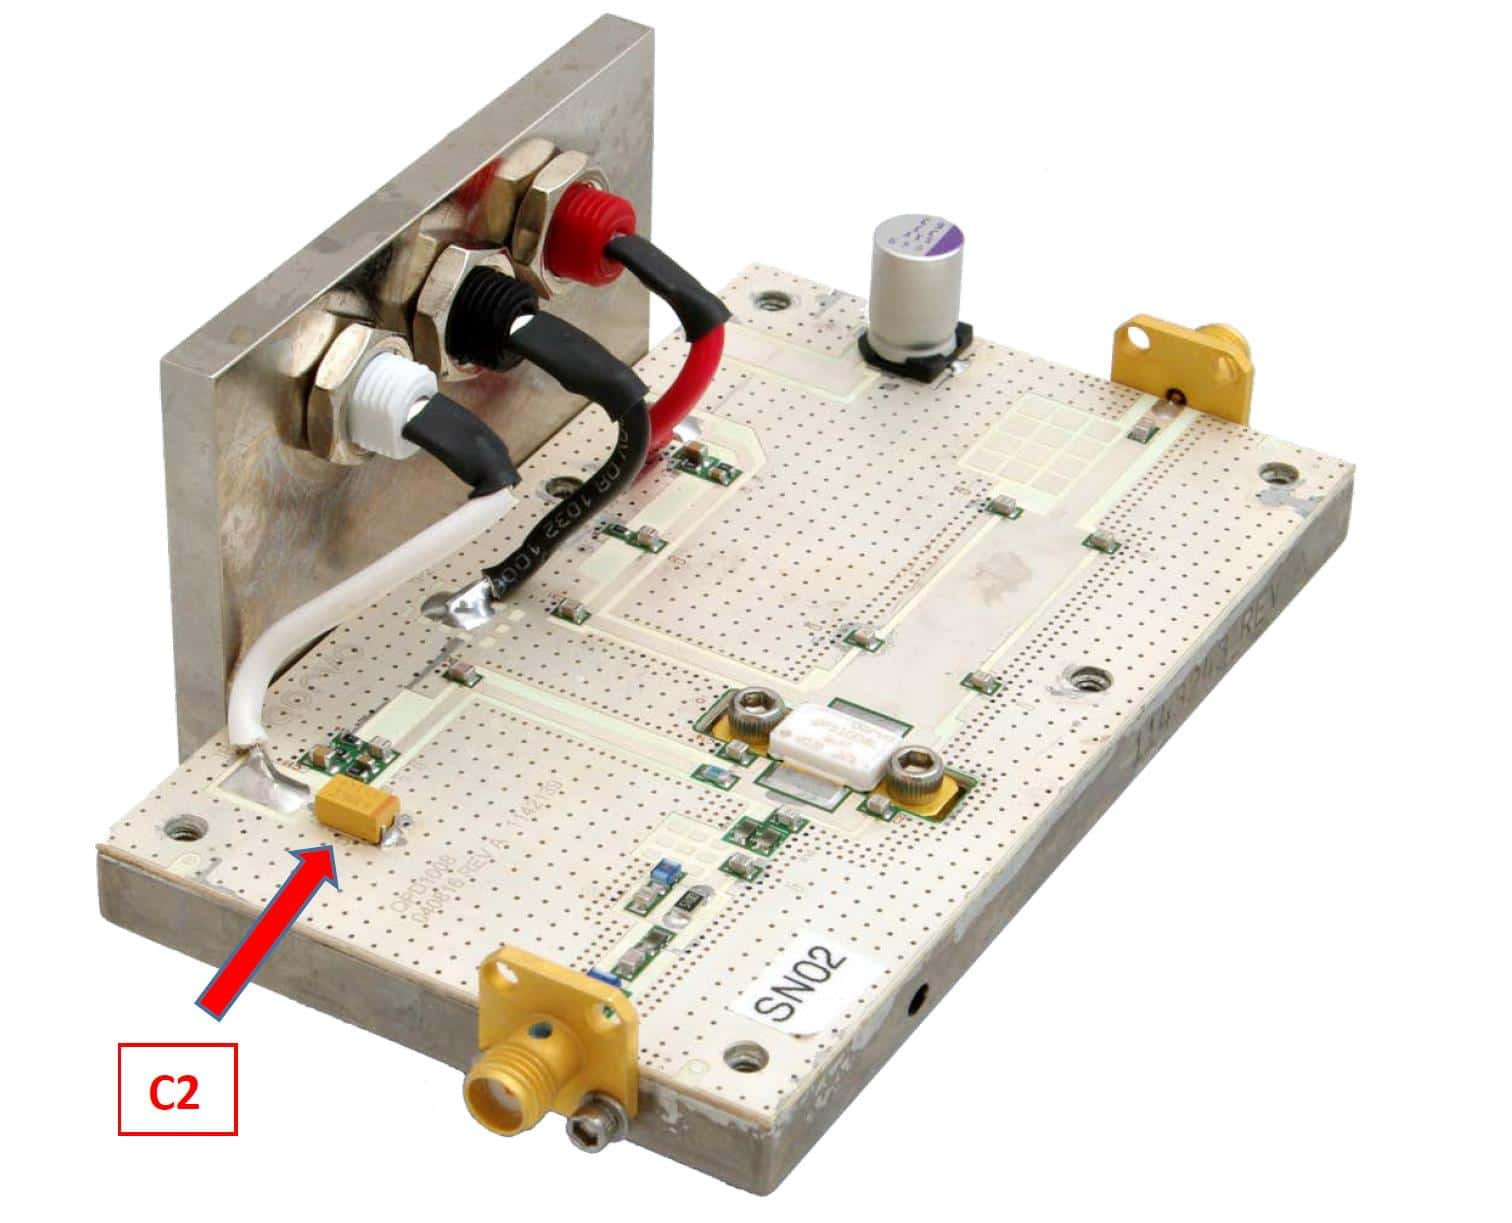 Ideally The Power Capacitor Should Be As Close As Possible To The